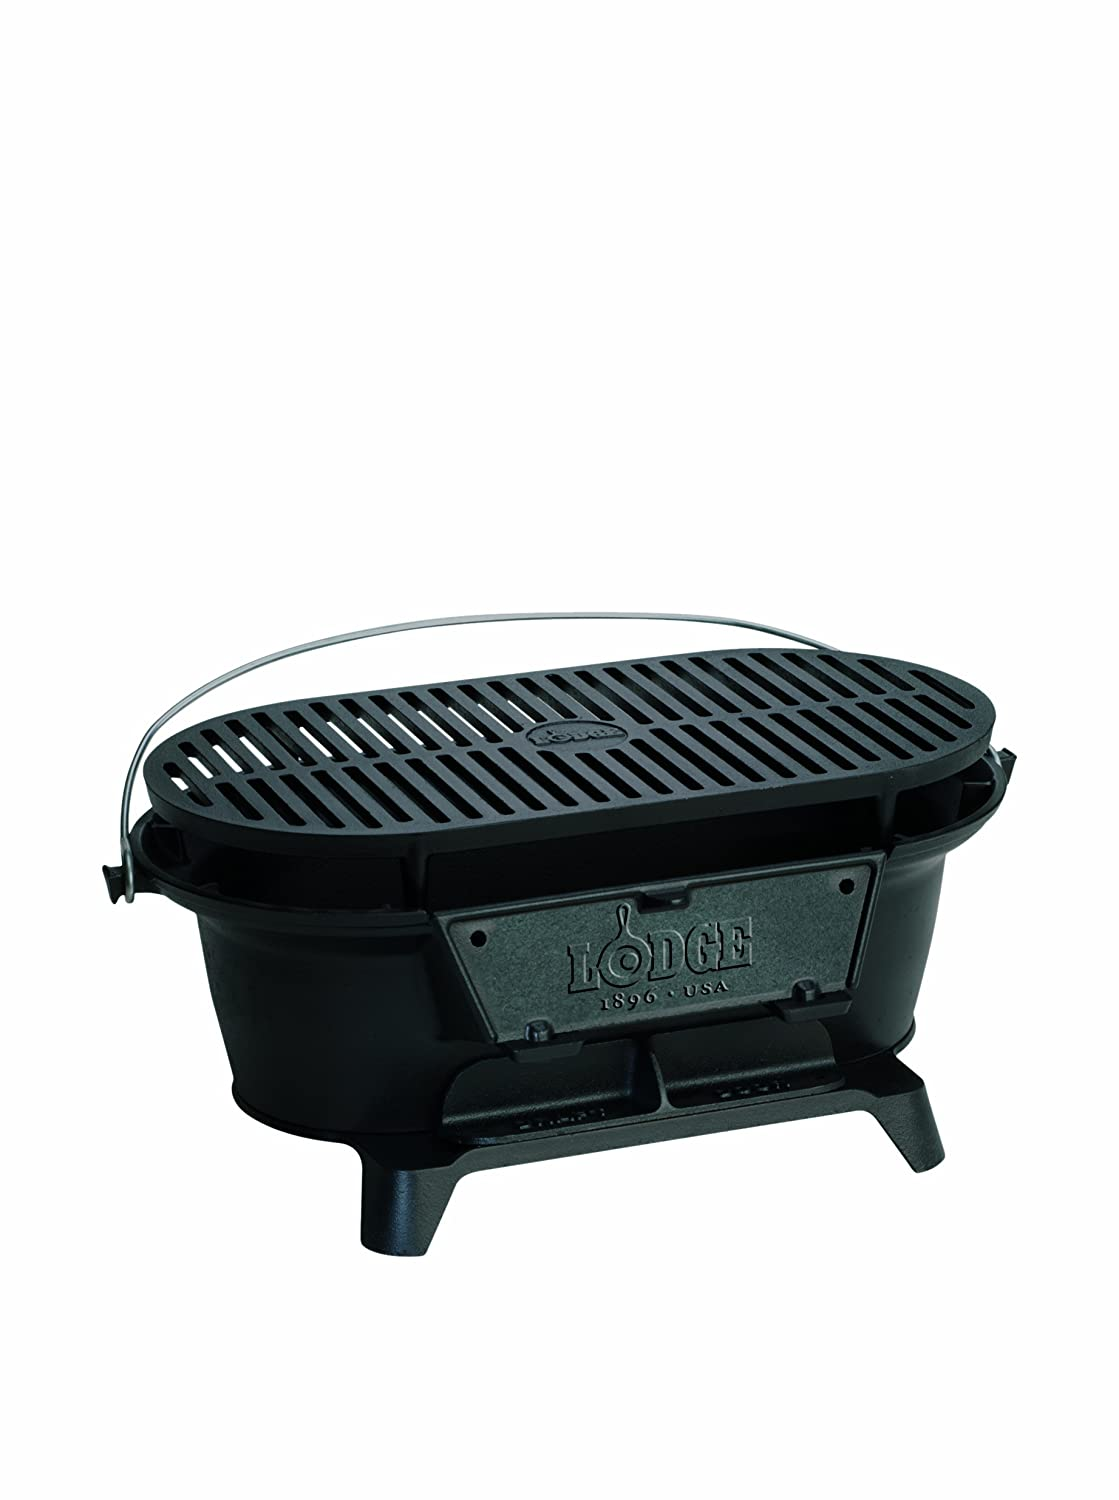 Lodge Cast Iron Sportsman s Grill. Large Charcoal Hibachi-Style Grill for Picnics, Tailgaiting, Camping or Patio. Two Adjustable Heights.